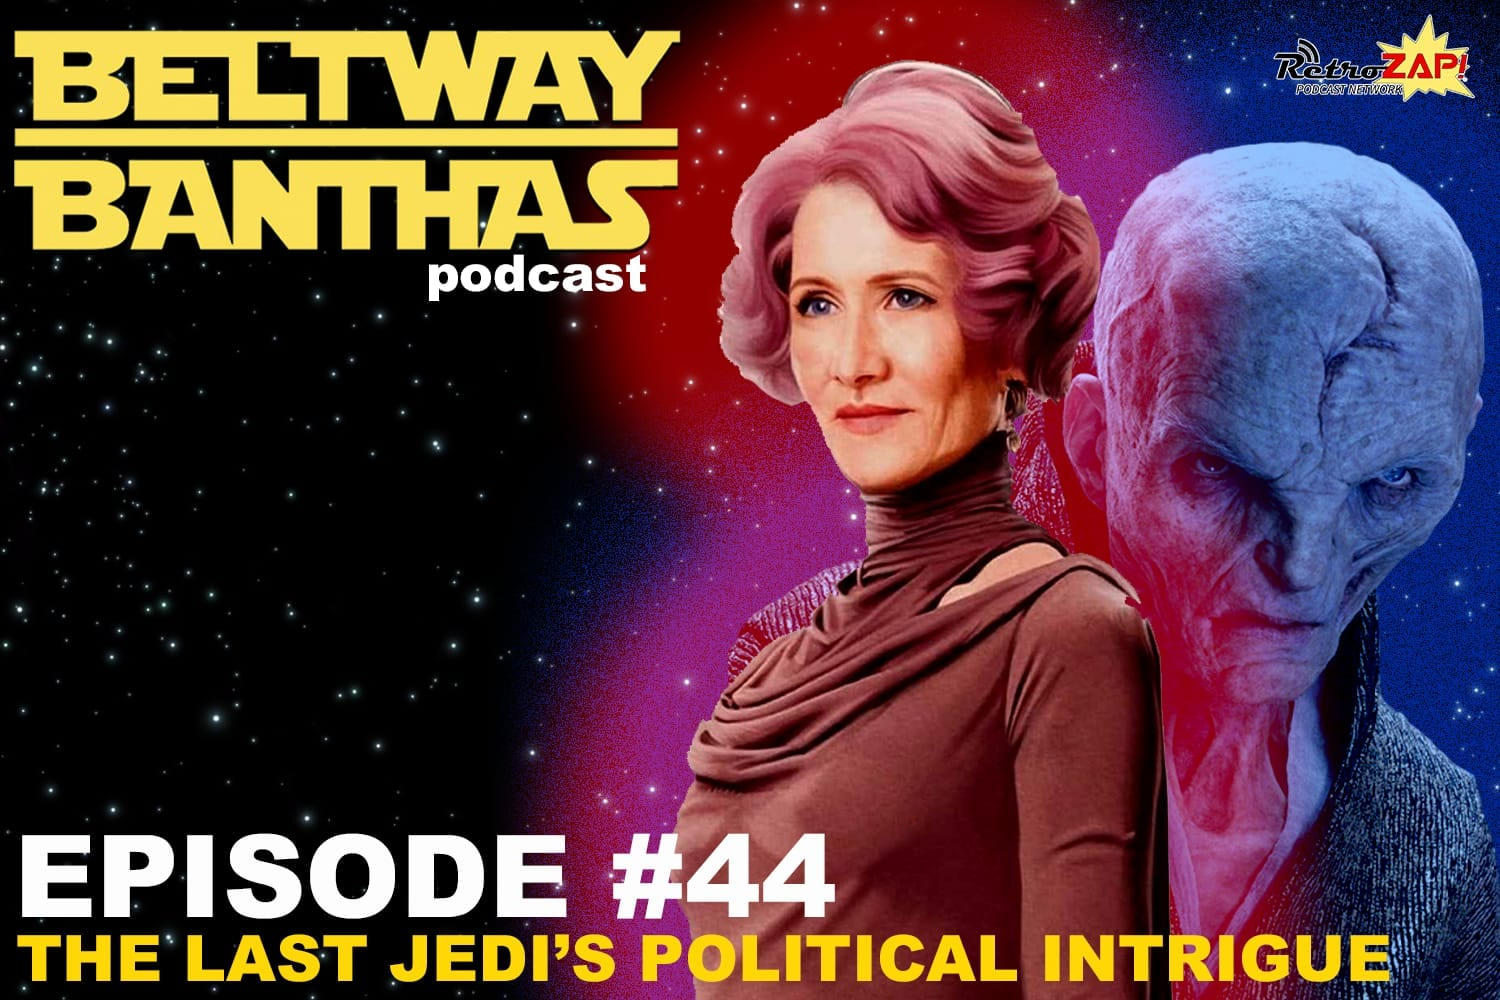 Beltway Banthas Episode #44: The Last Jedi's Political Intrigue